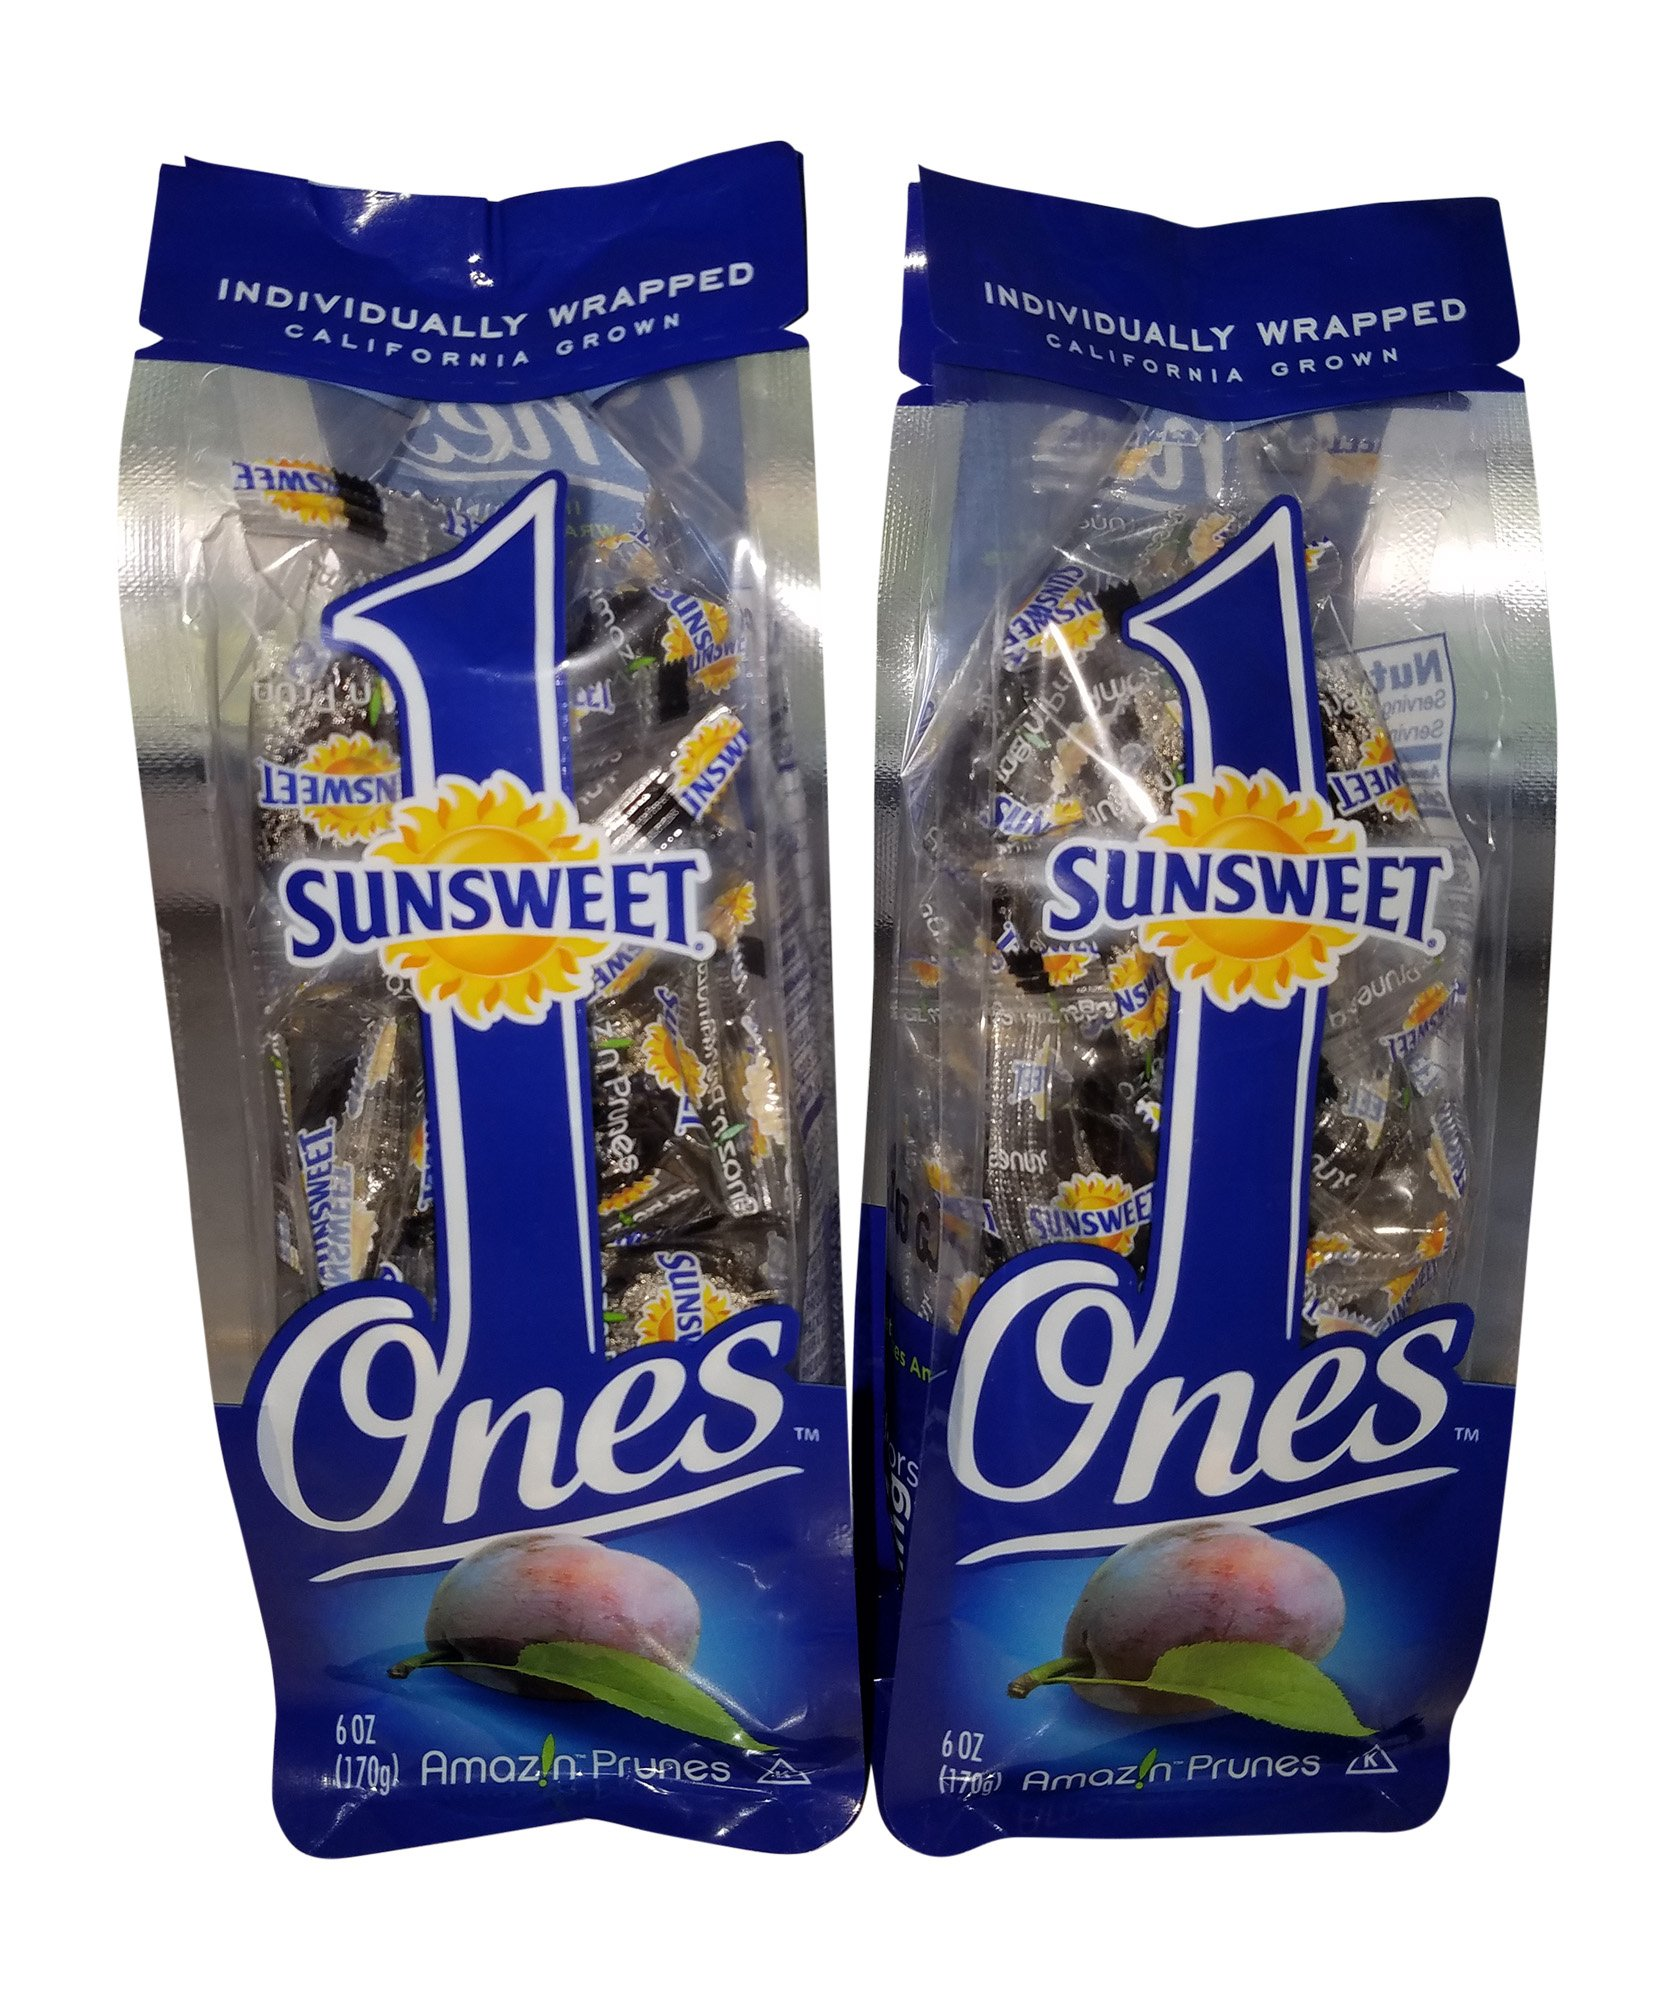 Sunsweet Gold Label Ones Super Select California Individually Wrapped Prunes 6.0 Ounces (Pack of 2)(Packaging May Vary) by Sunsweet